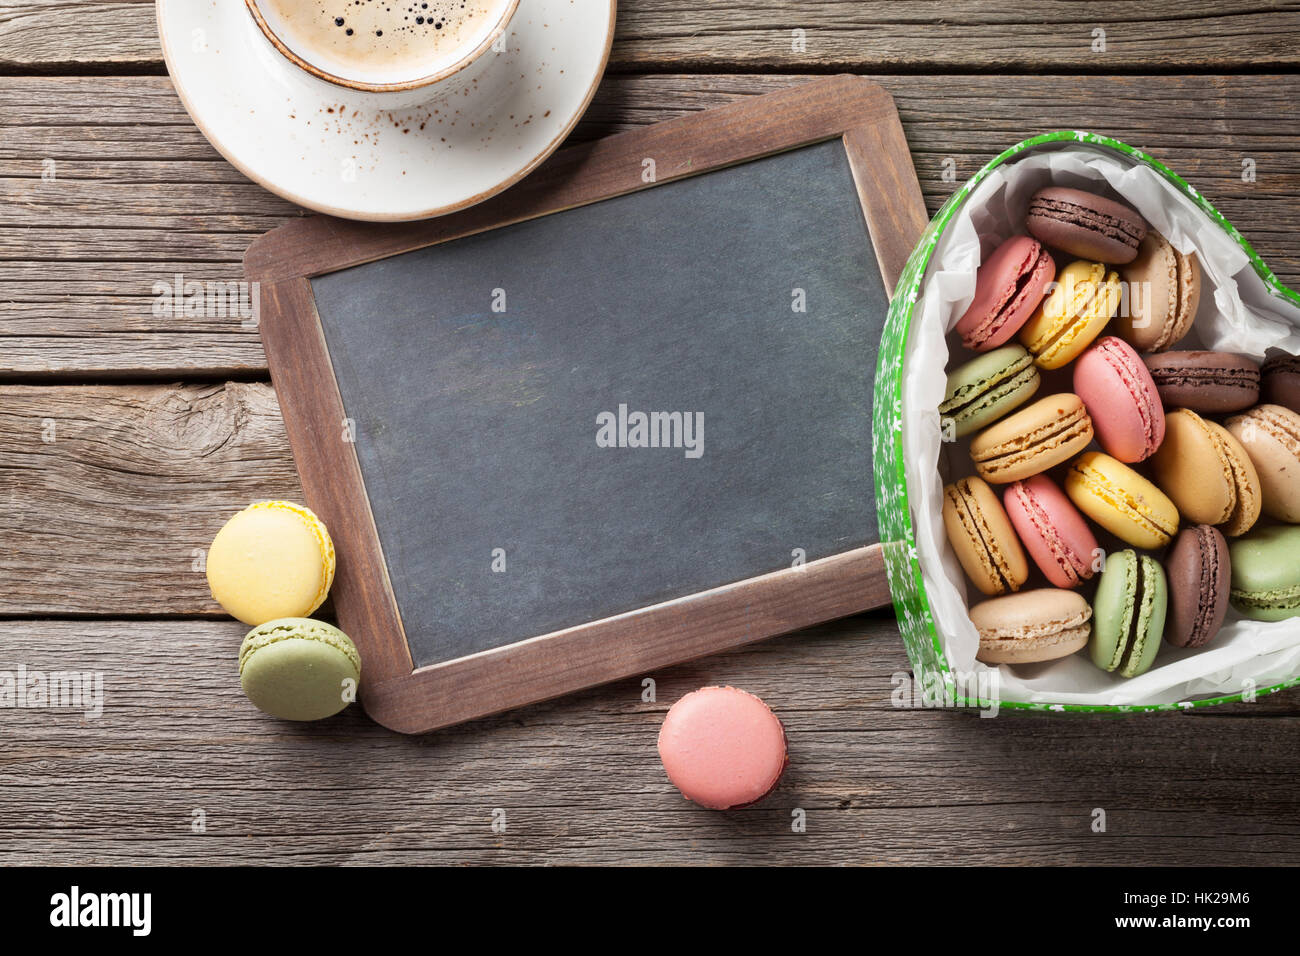 Colorful macaroons in Valentines day heart shaped gift box and coffee cup on wooden table. Top view with chalkboard - Stock Image